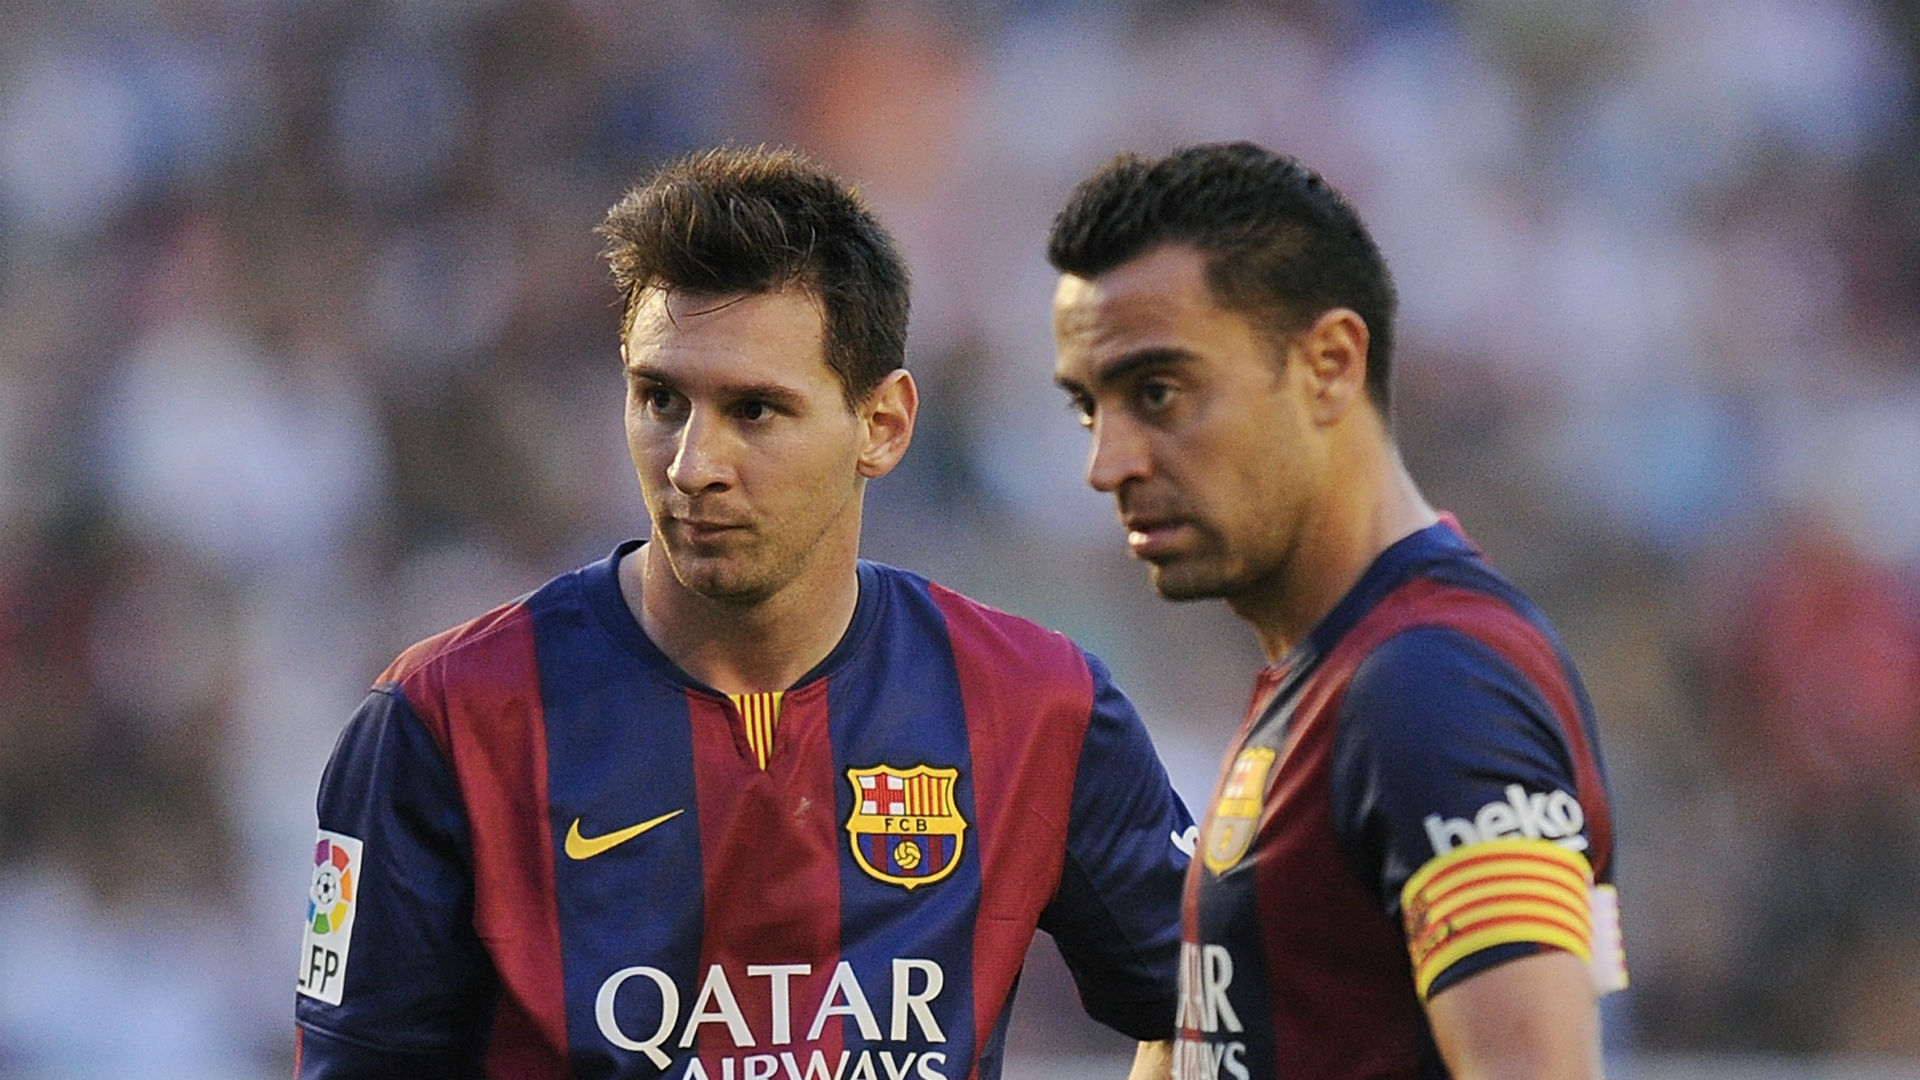 I told Xavi to go to Barcelona while the God of Football, Messi, is still there – Eto'o